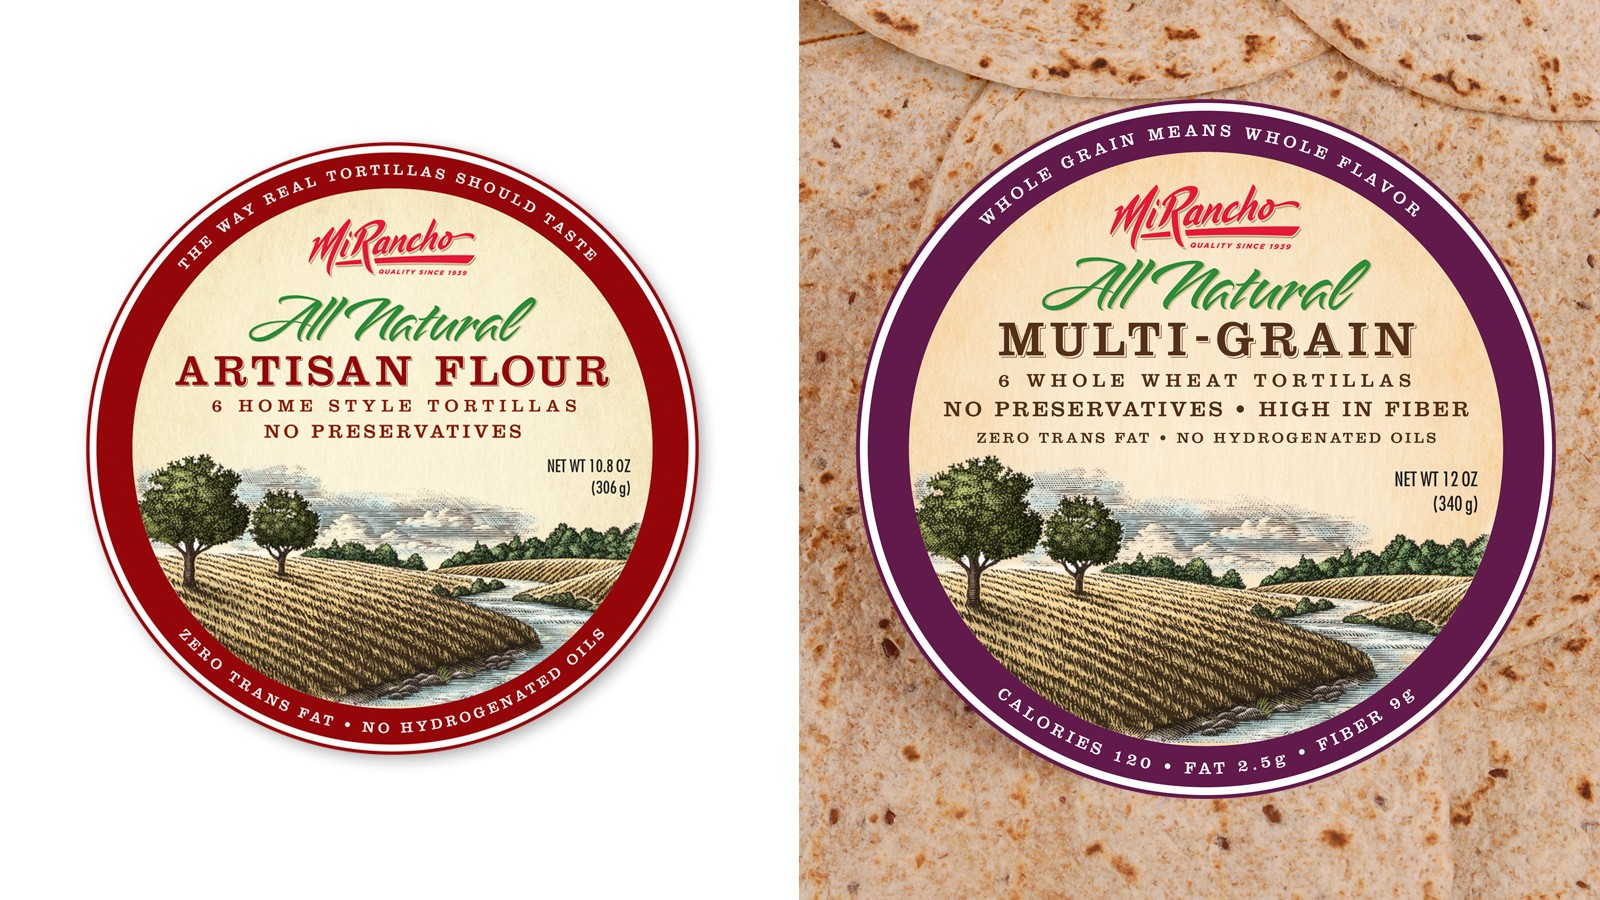 MI RANCHO ALL NATURAL TORTILLA LABELS